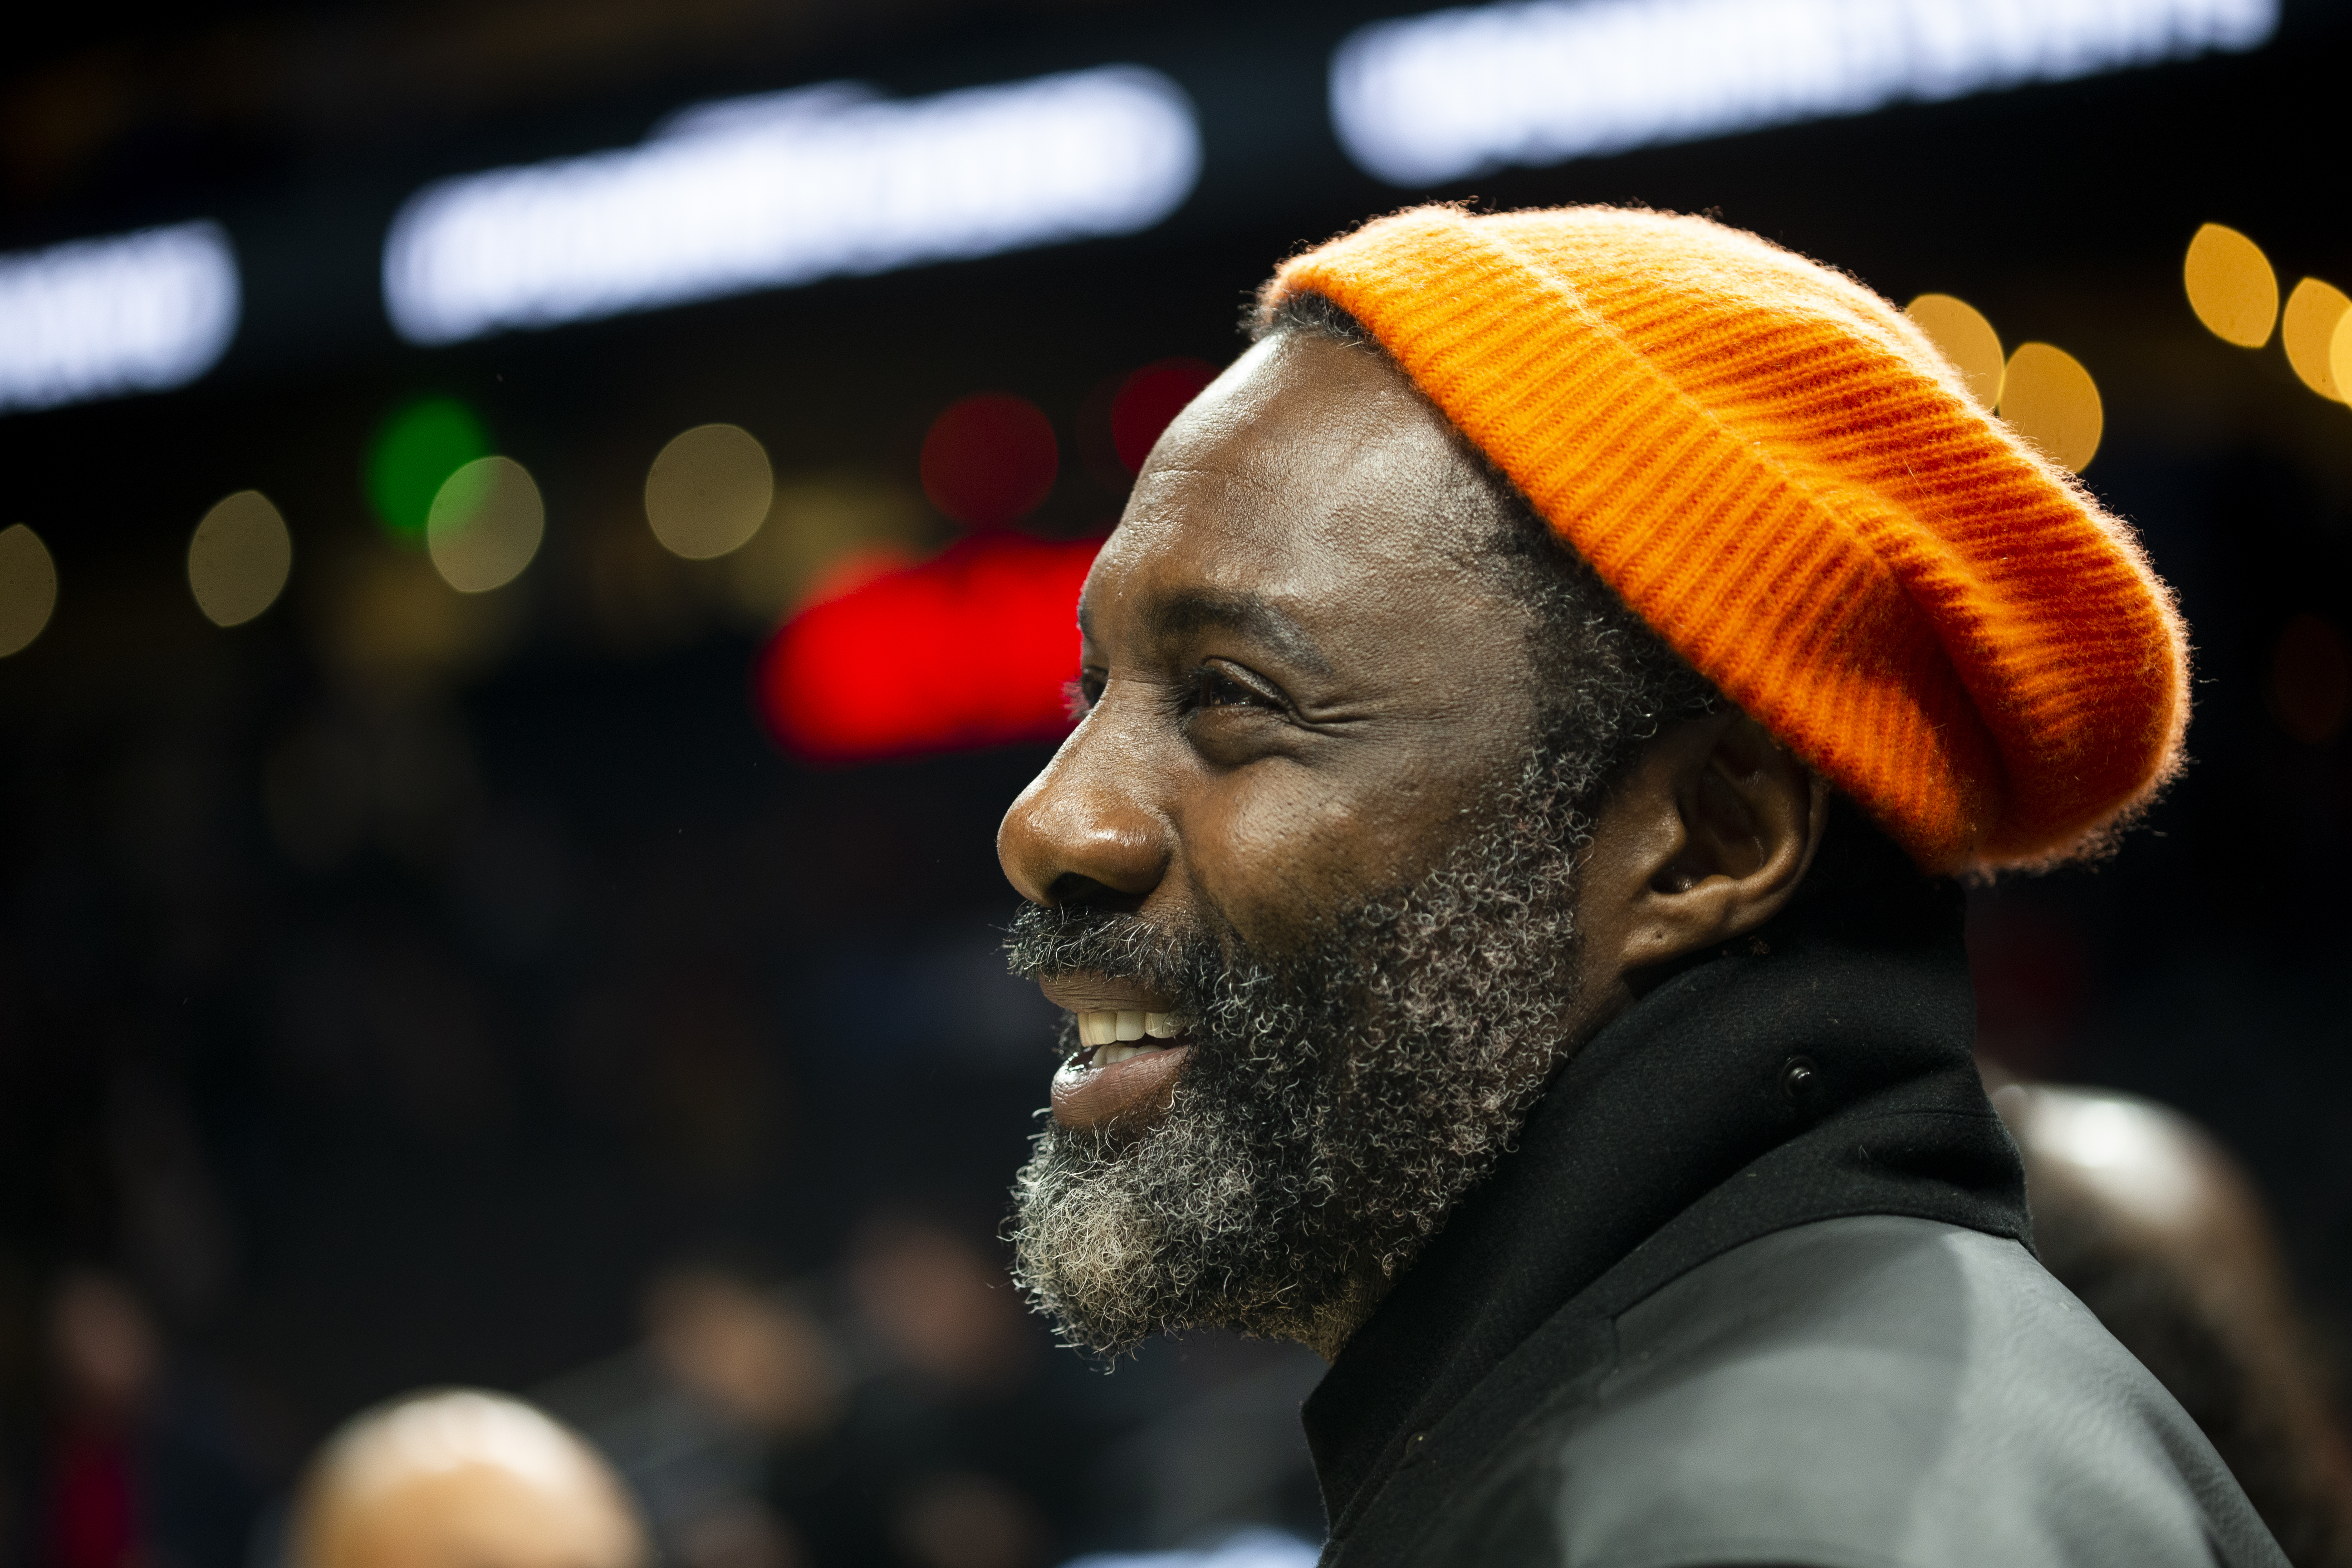 ATLANTA, GA - NOVEMBER 23: Idris Elba attends the game between the Atlanta Hawks and the Toronto Raptors at State Farm Arena on November 23, 2019 in Atlanta, Georgia. NOTE TO USER: User expressly acknowledges and agrees that, by downloading and or using this photograph, User is consenting to the terms and conditions of the Getty Images License Agreement. (Photo by Carmen Mandato/Getty Images)